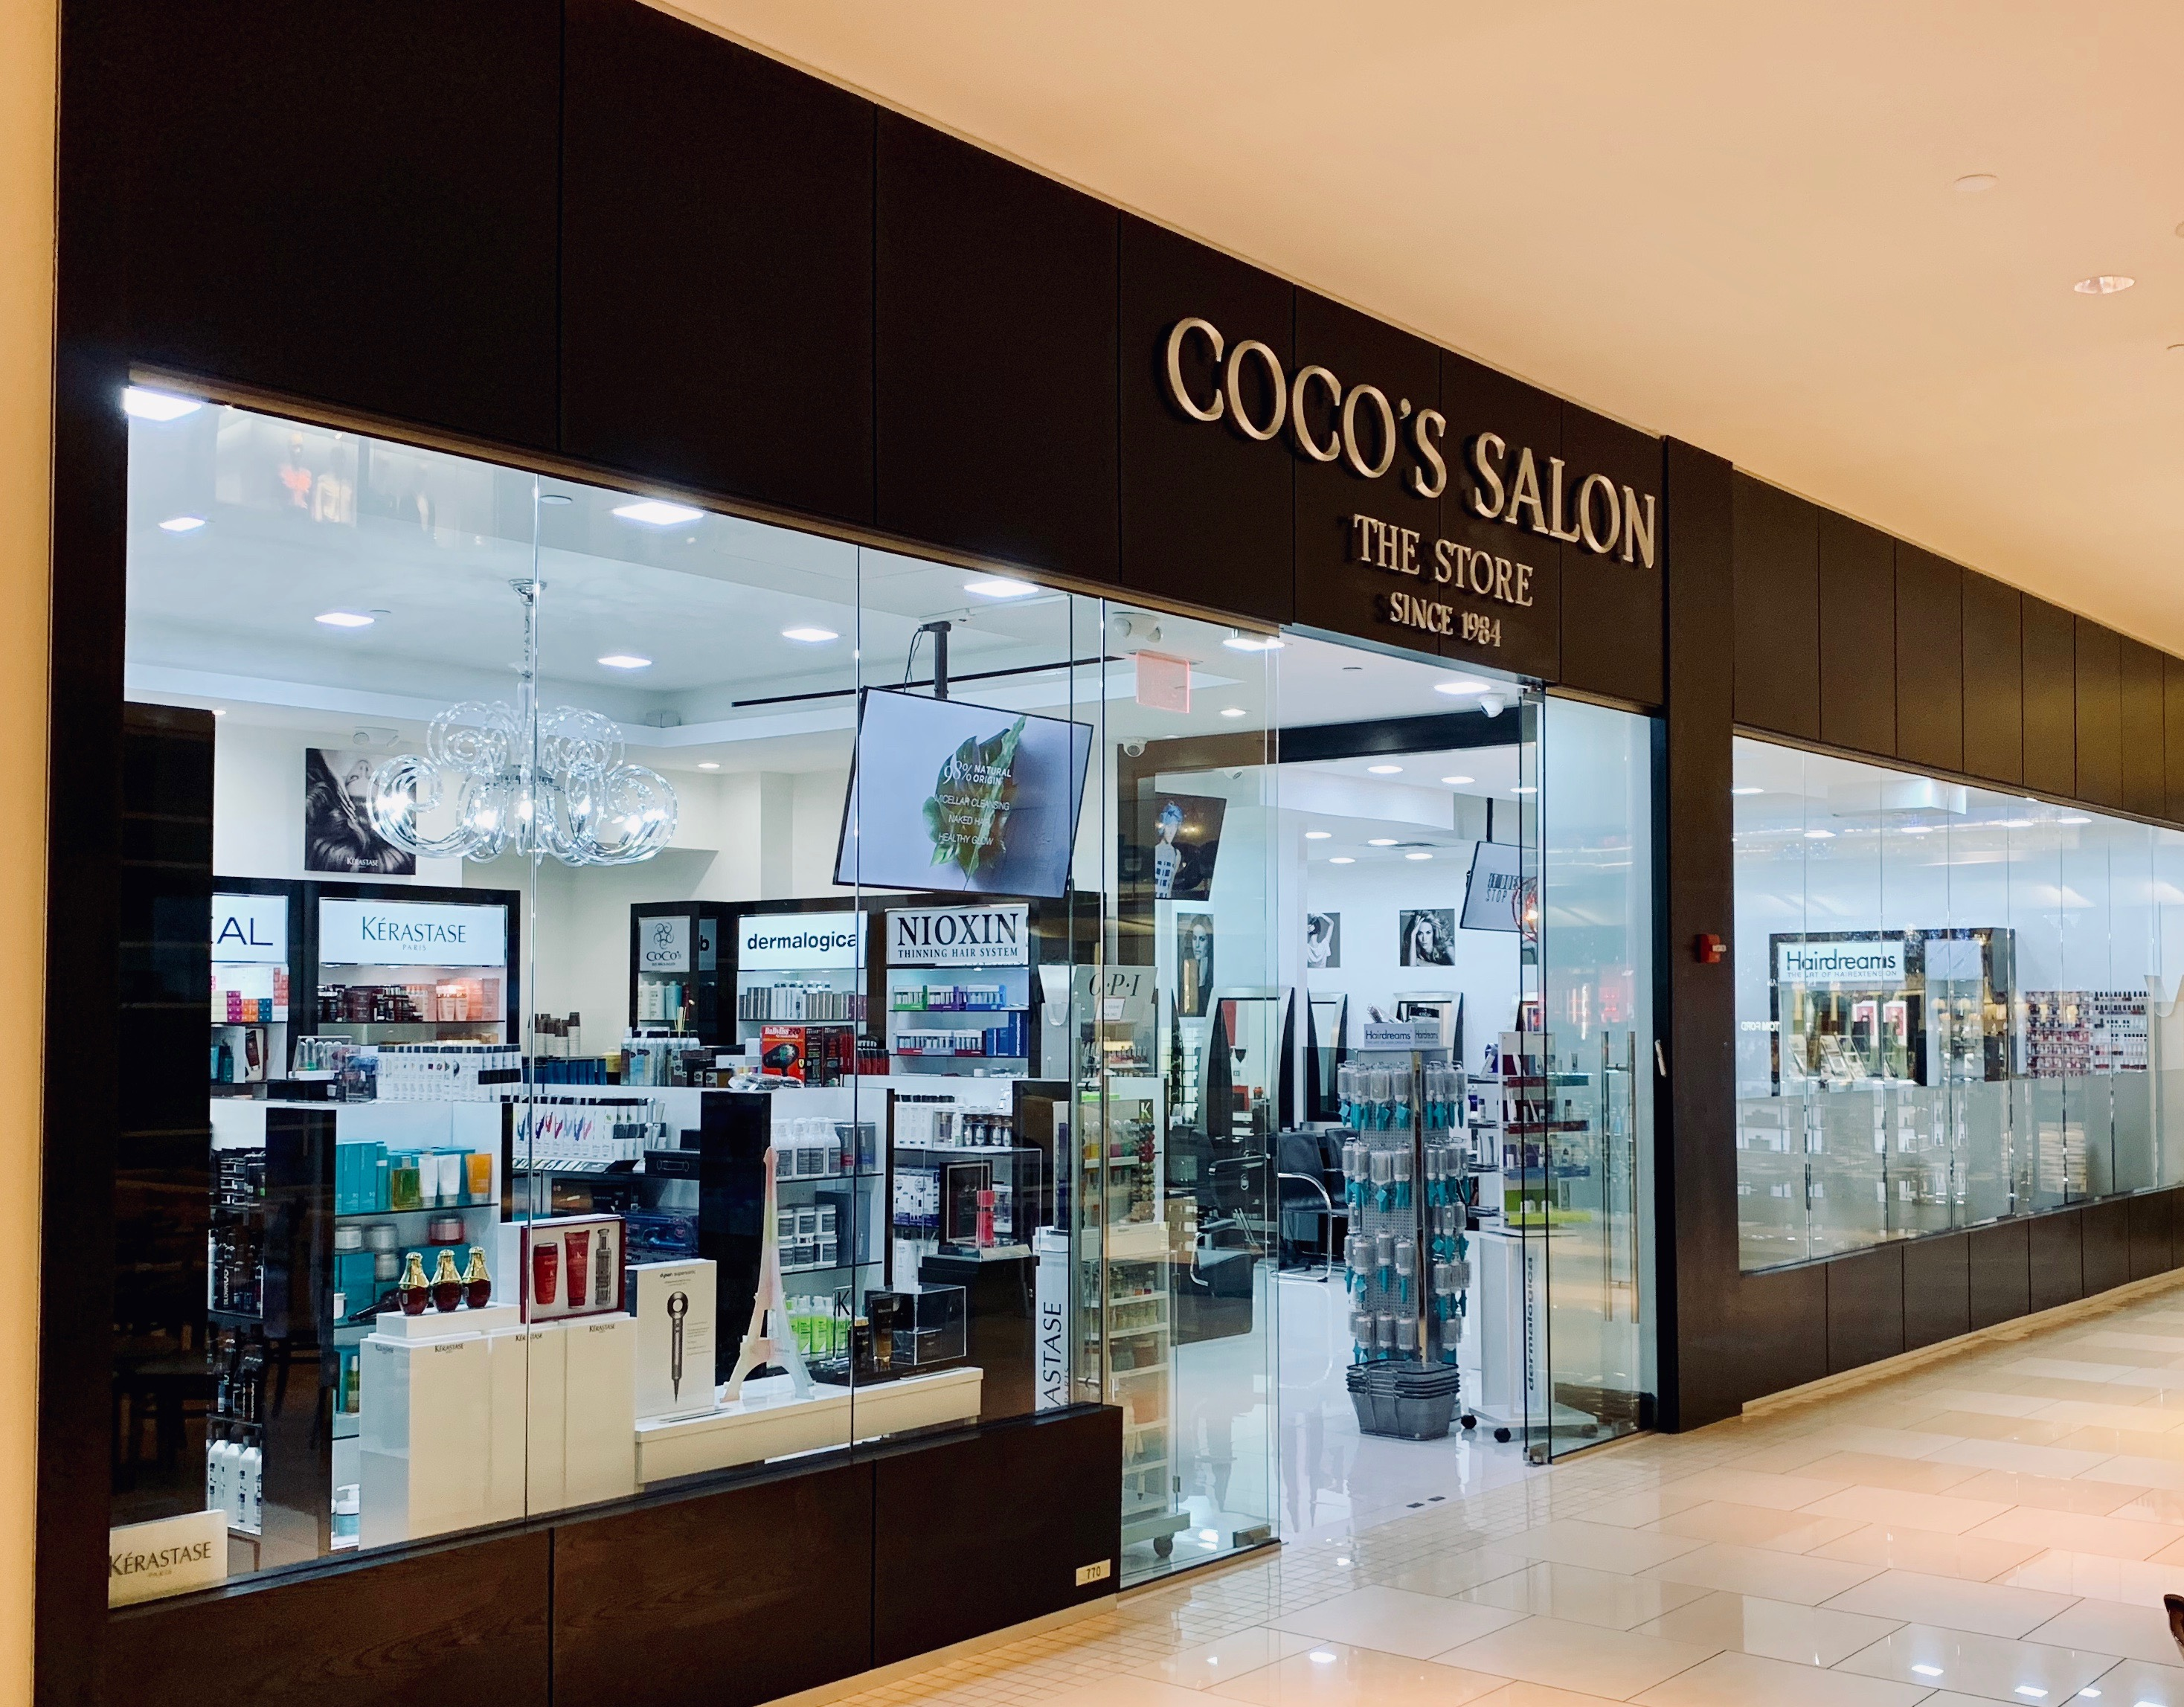 COCOS HAIR SALON AVENTURA MALL FLORIDA